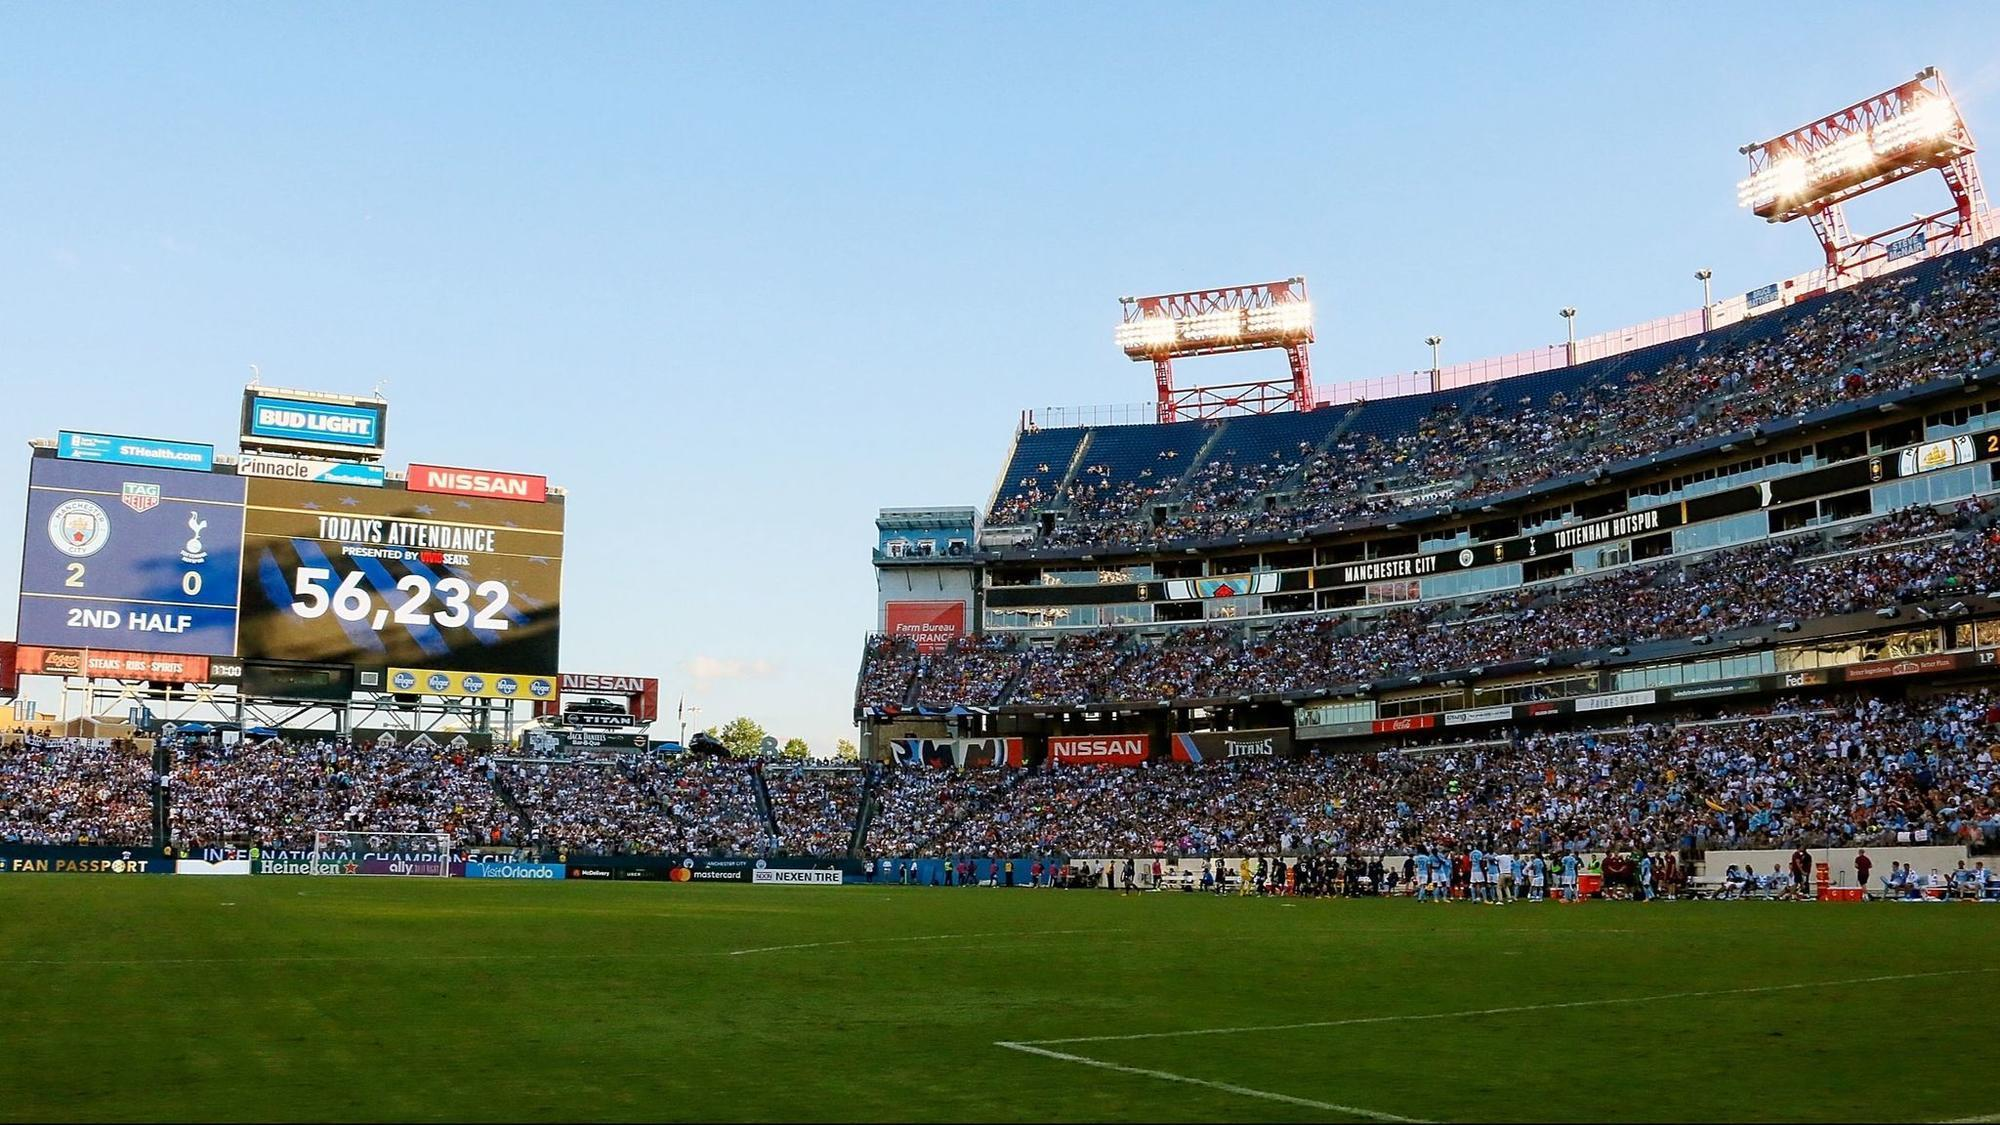 Nashville Sales Tax >> Nashville MLS stadium cost study called into question - Chicago Tribune